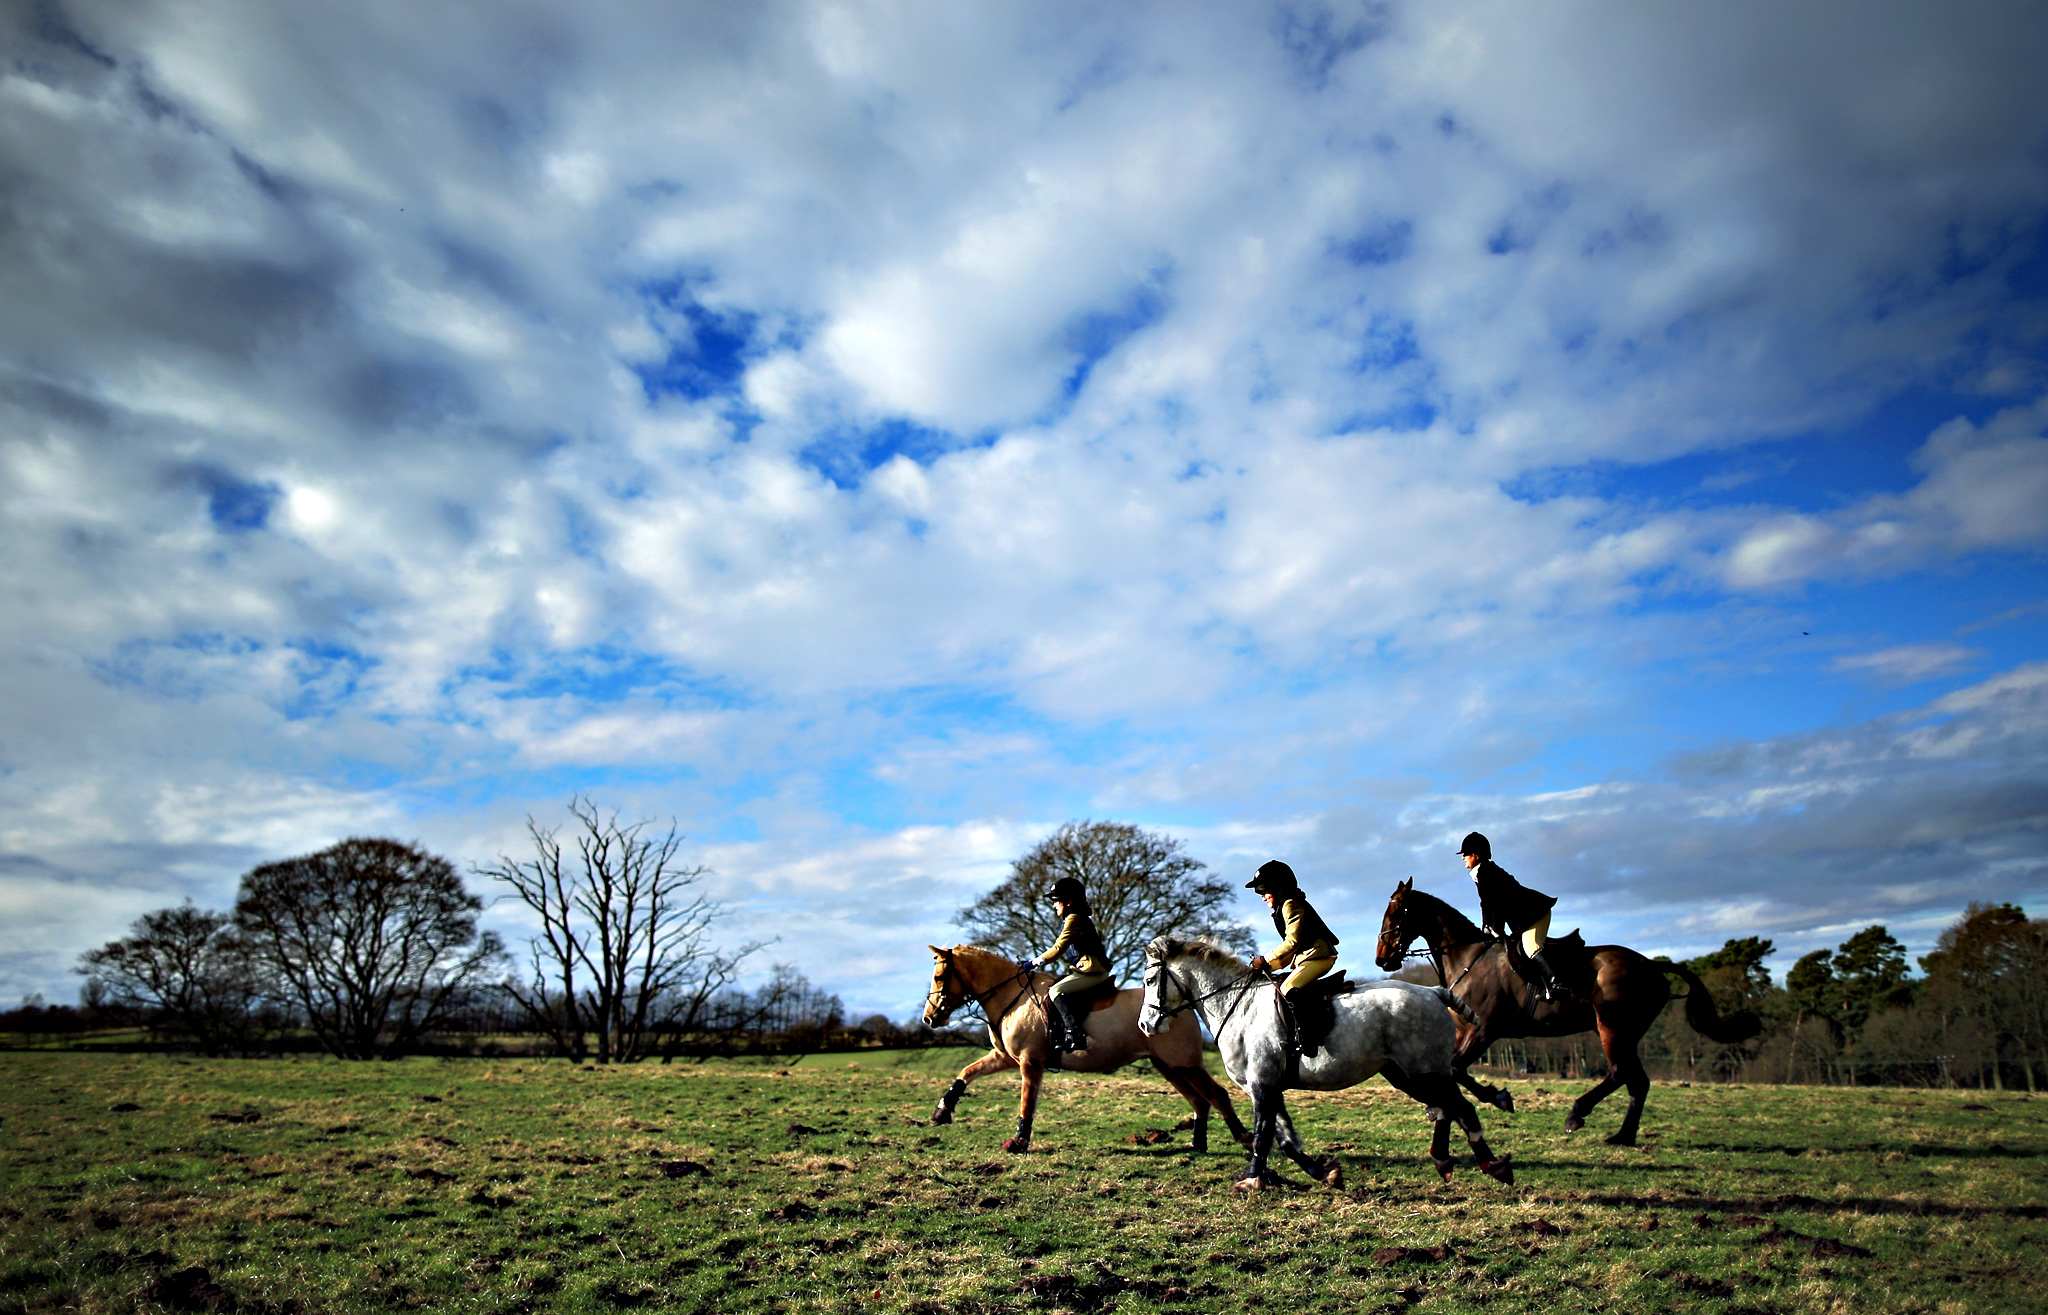 The horse and hounds of the Cheshire Forest Hunt prepares for a mid-week hunt on the 10th anniversary of the ban on hunting with hounds on February 18, 2015 in Knutsford, England. The riders and hounds of the Cheshire Forest Hunt set off on a drag hunt through the Cheshire countryside. It is 10 years today since the ban on hunting with hounds came into force after The Hunting Act was approved by parliament after 700 hours of debate in the house.